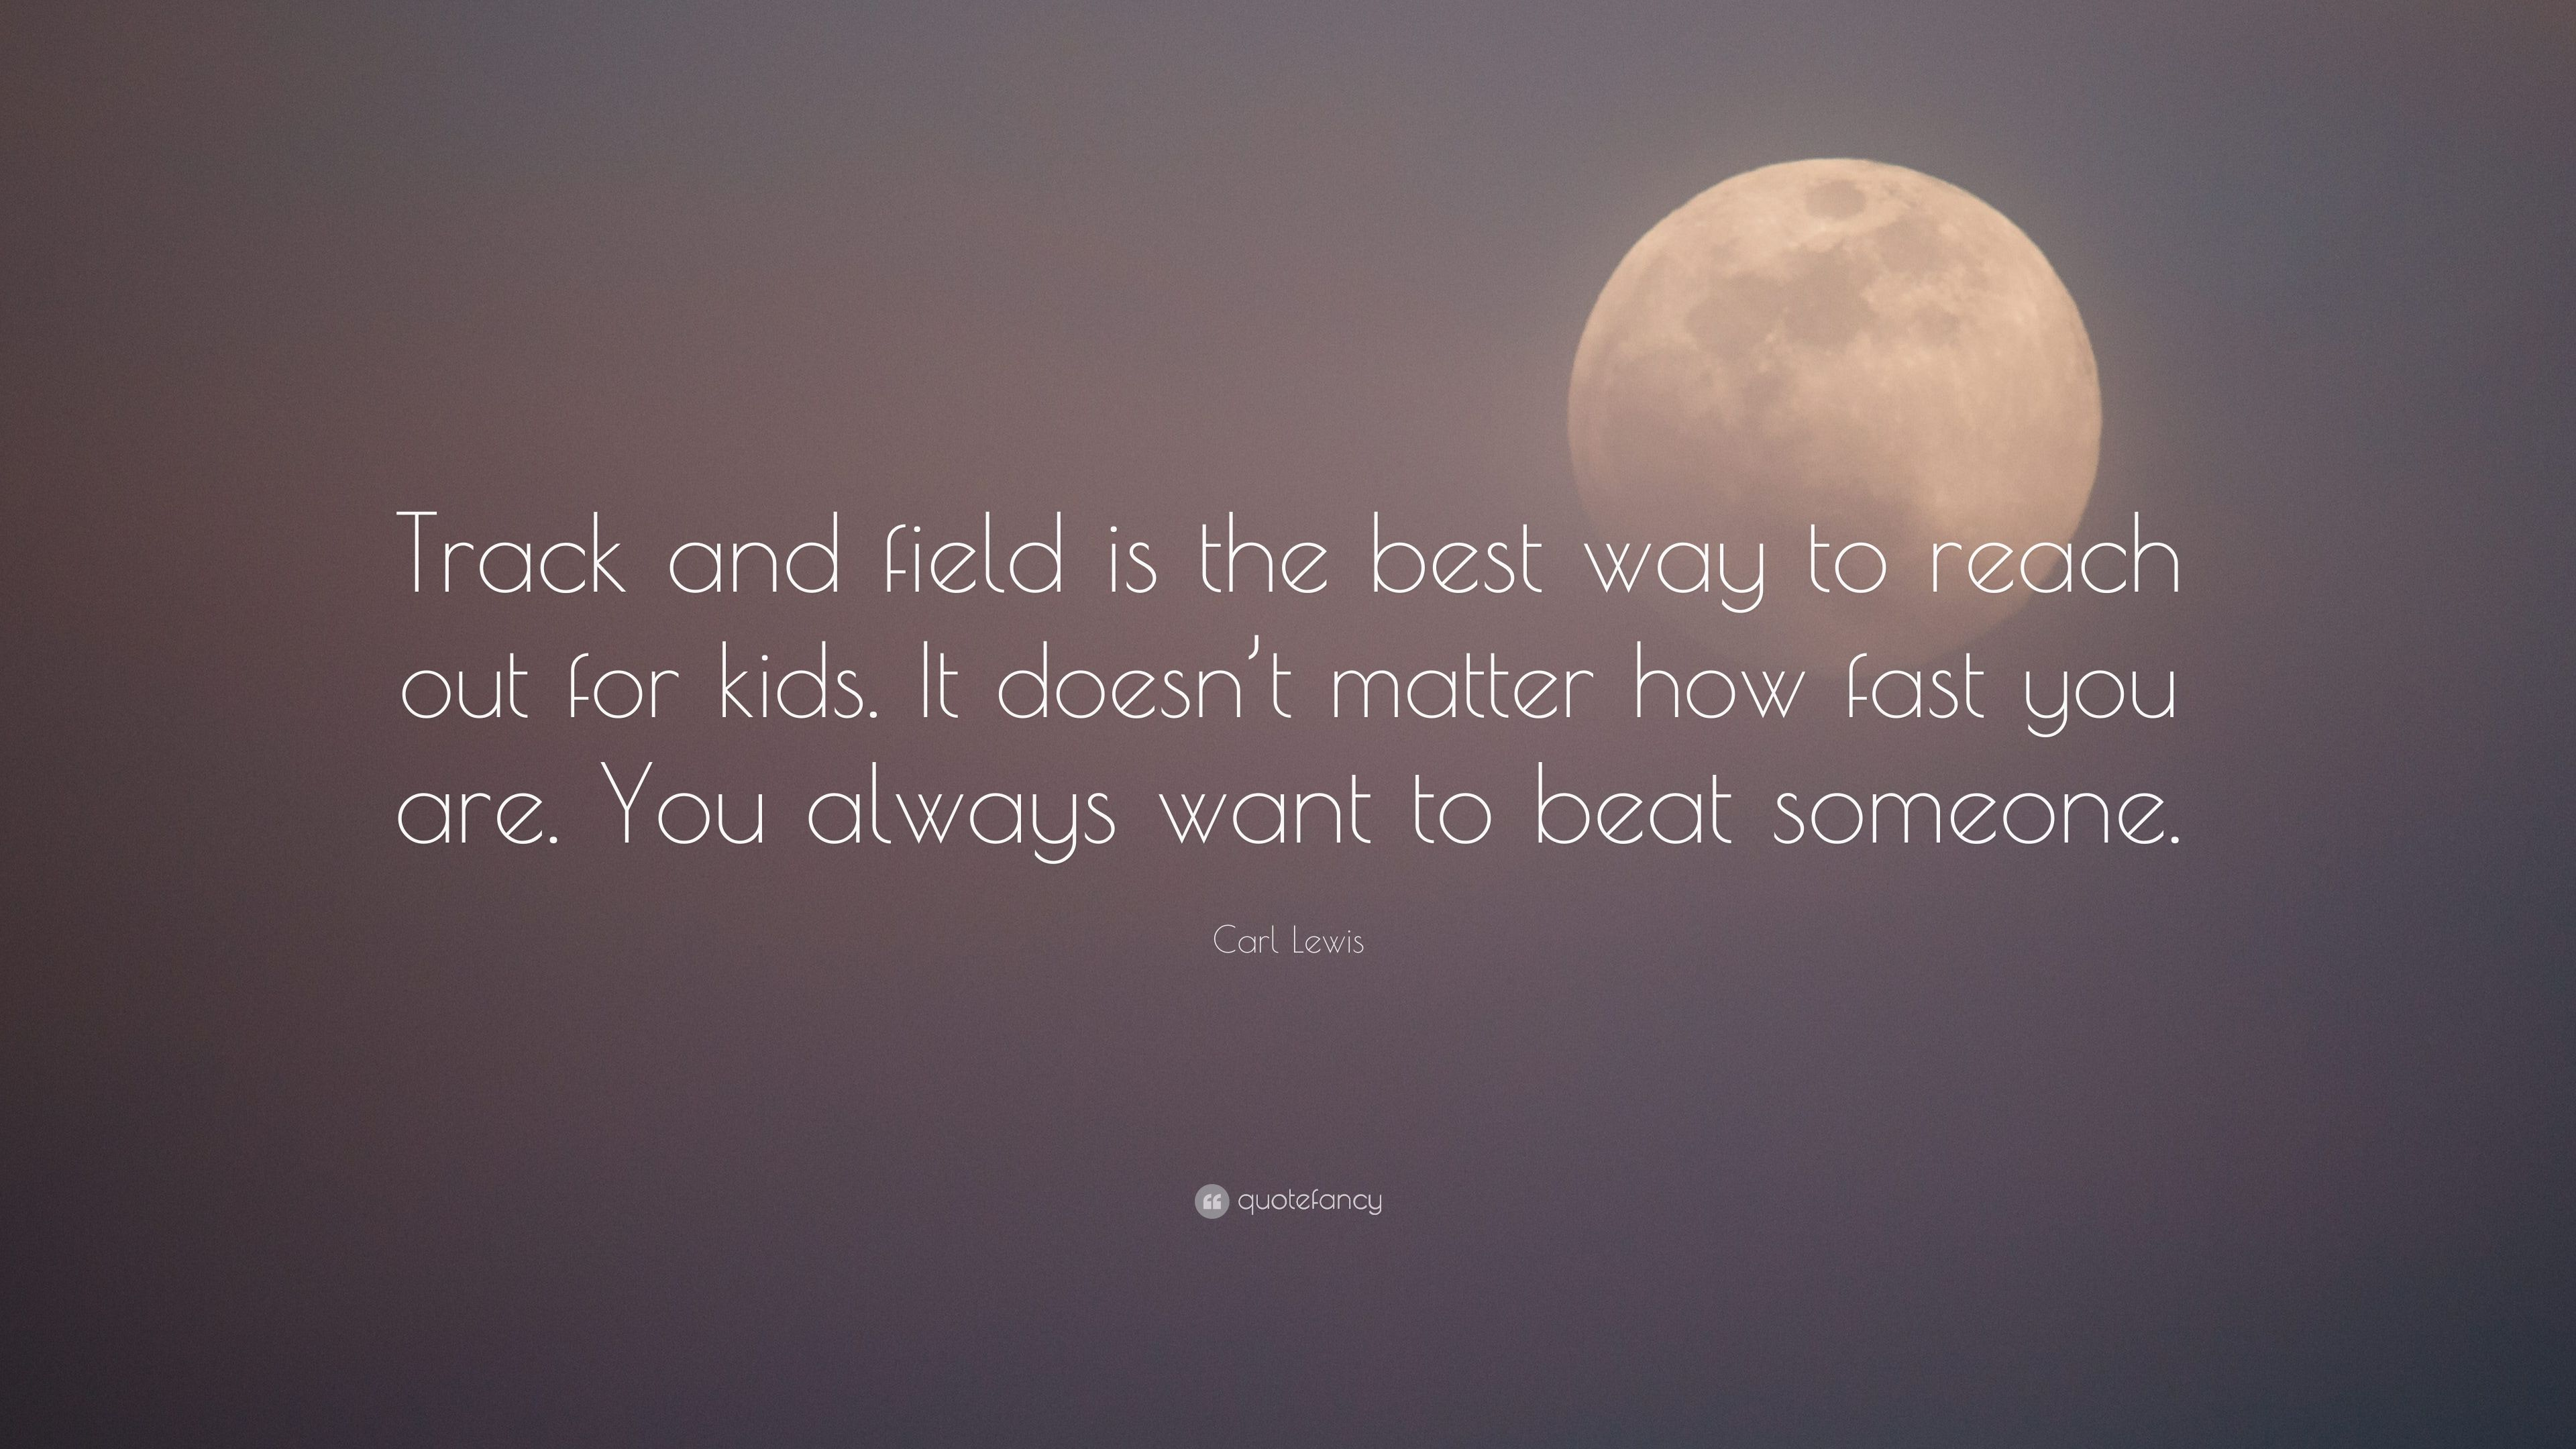 Carl Lewis Quote Track And Field Is The Best Way To Reach Out For